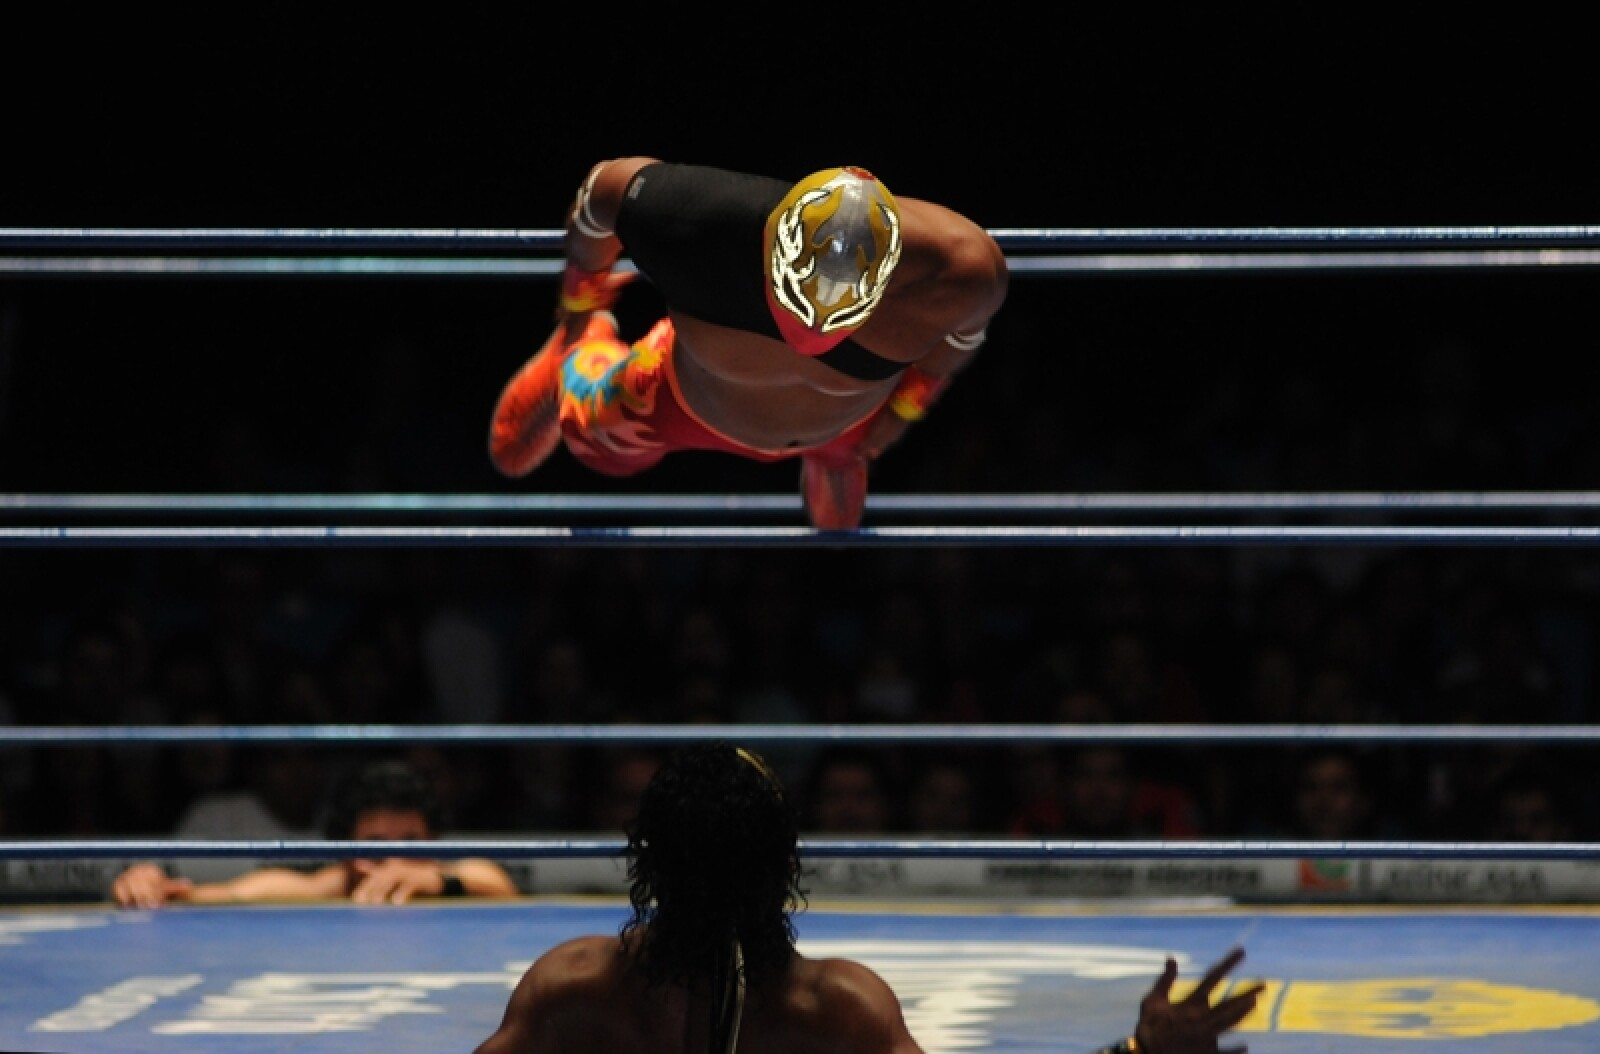 Fuego rey escorpion arena mexico lucha libre